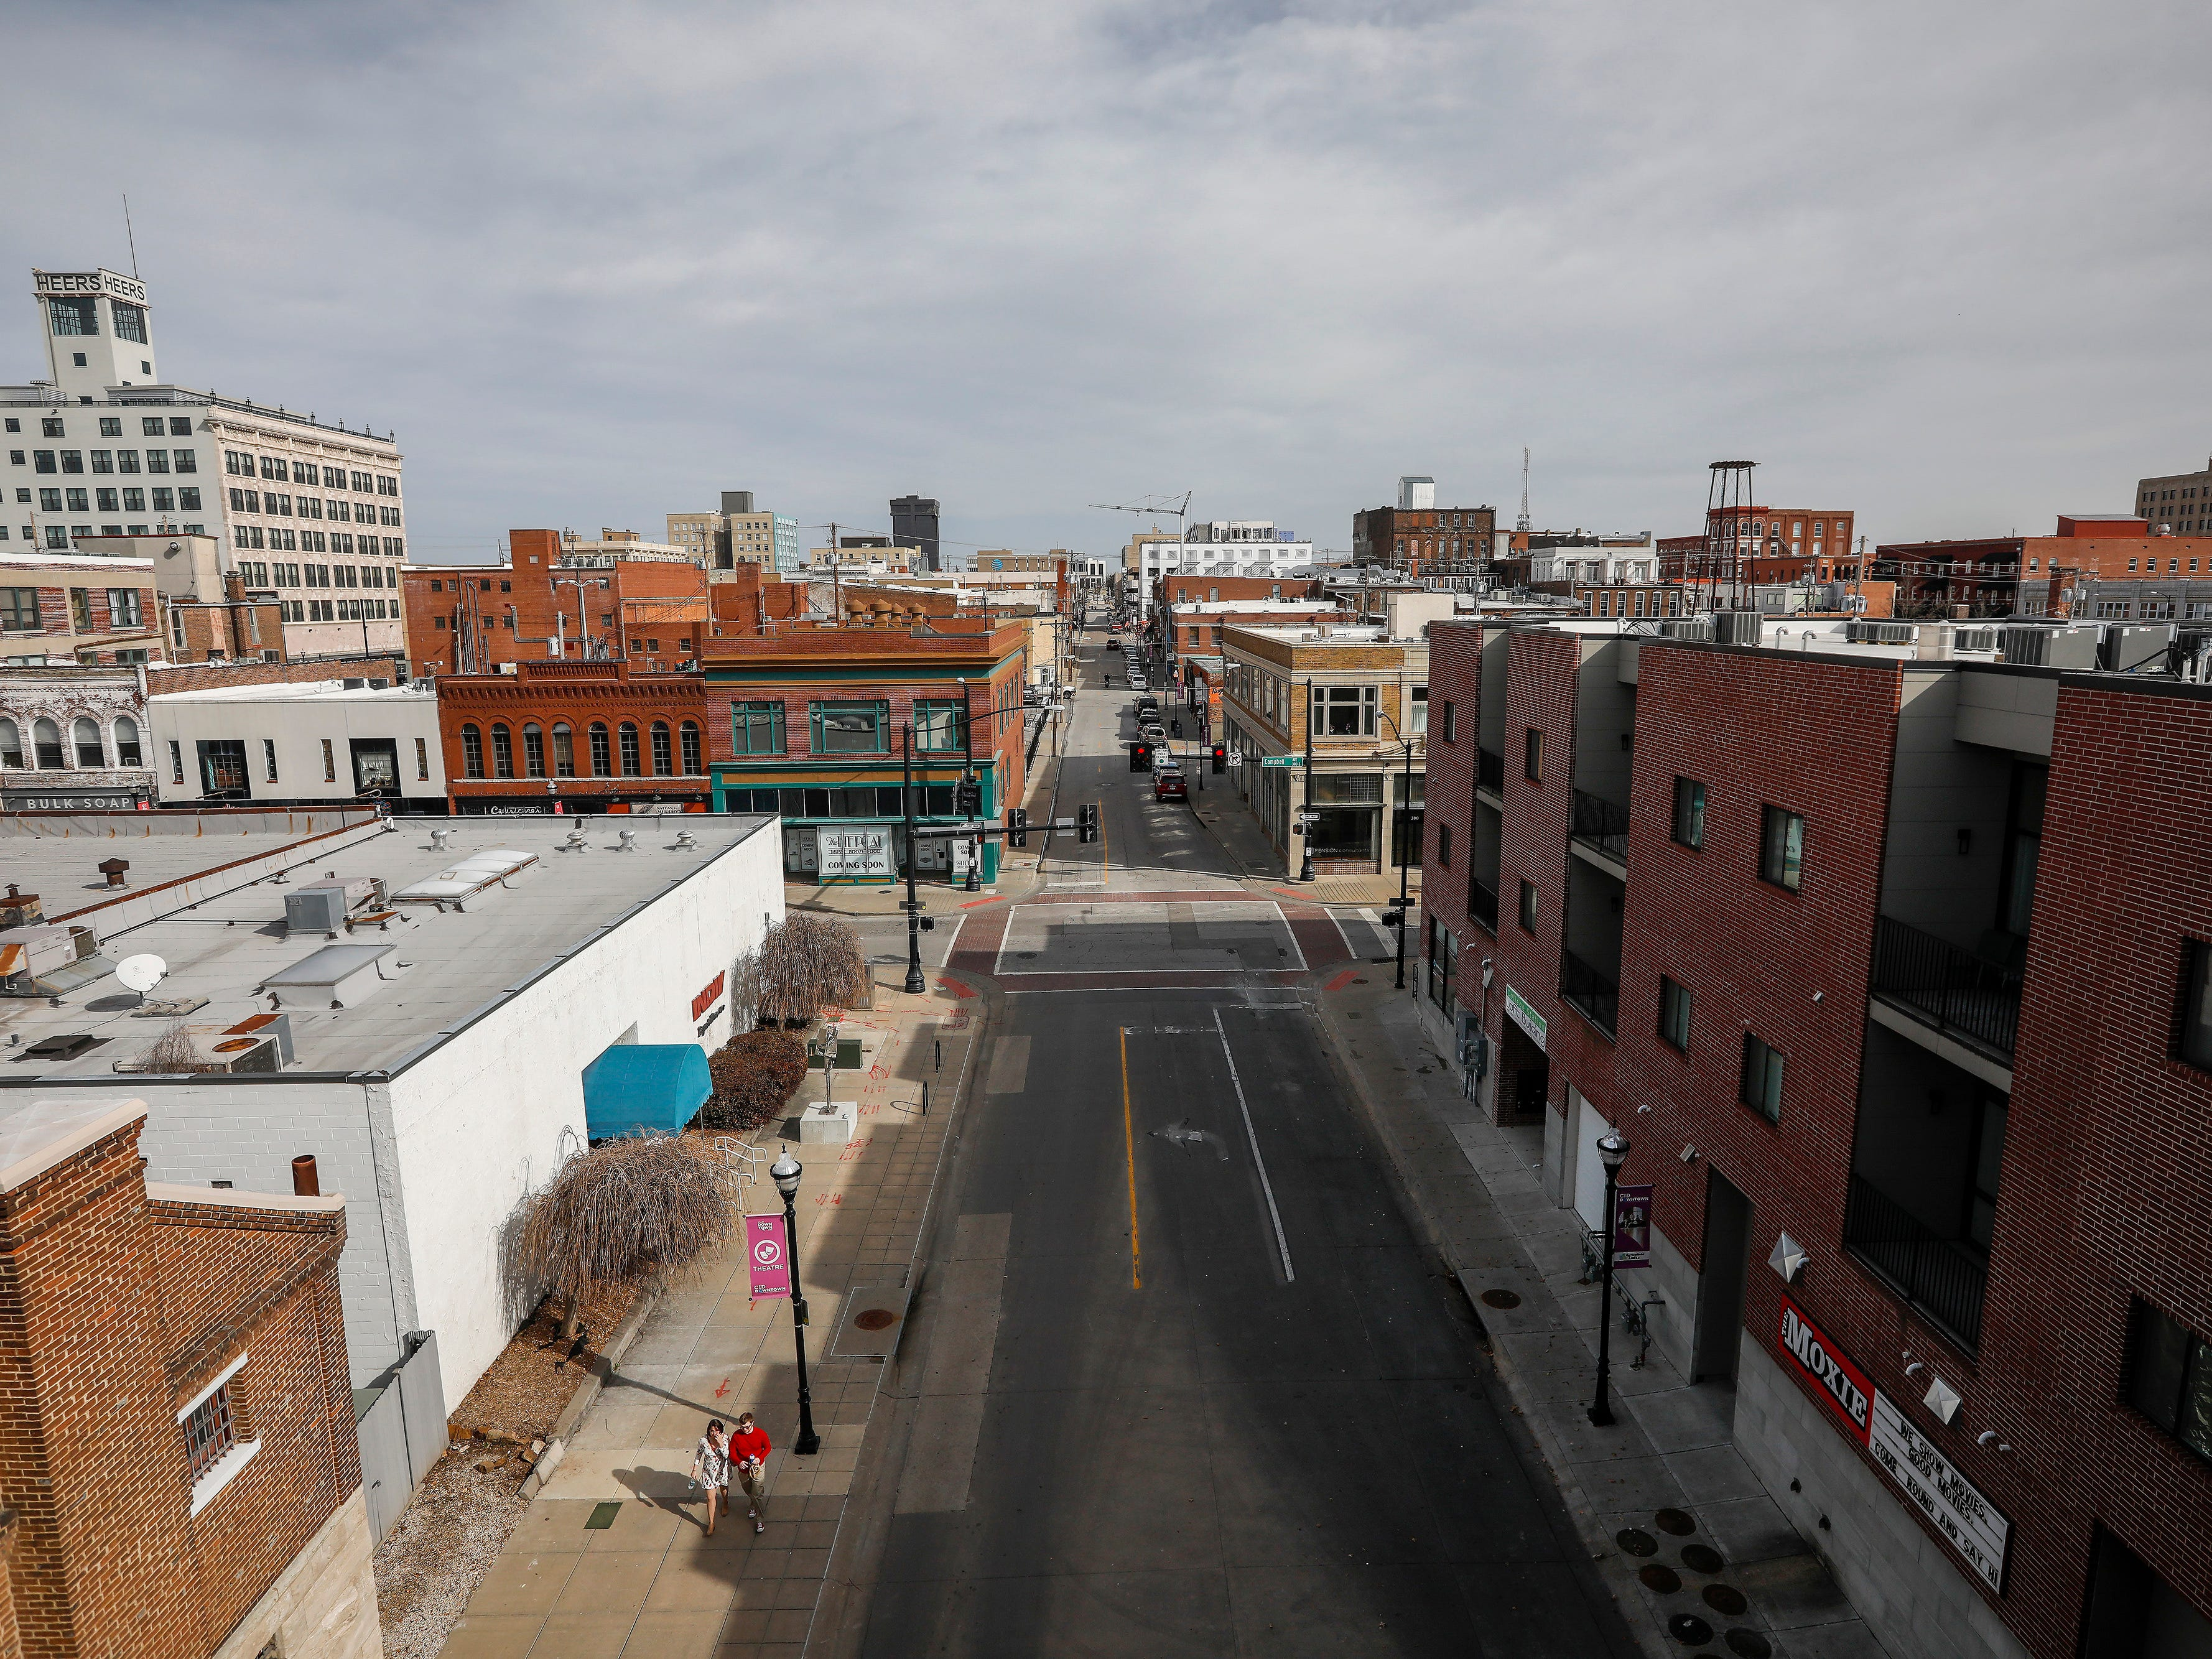 A look east down McDaniel Street  on Thursday, Feb. 14, 2019.  Temperatures were in the low 60s on Thursday.